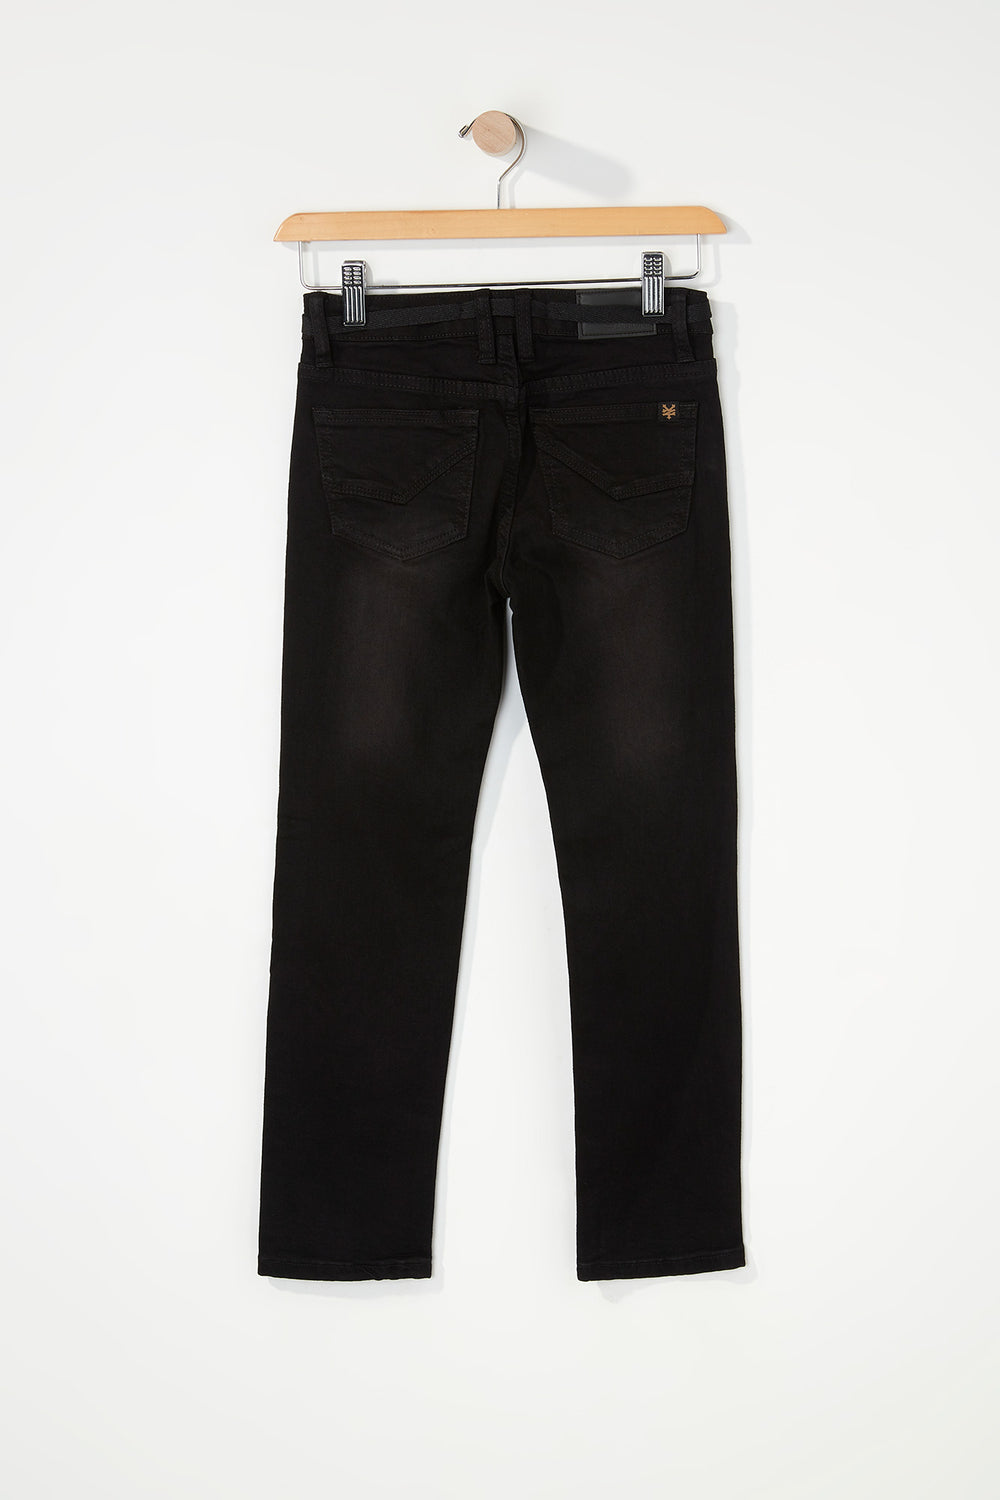 Jeans Ajusté Extensible Aspect Usé Zoo York Junior Noir Total